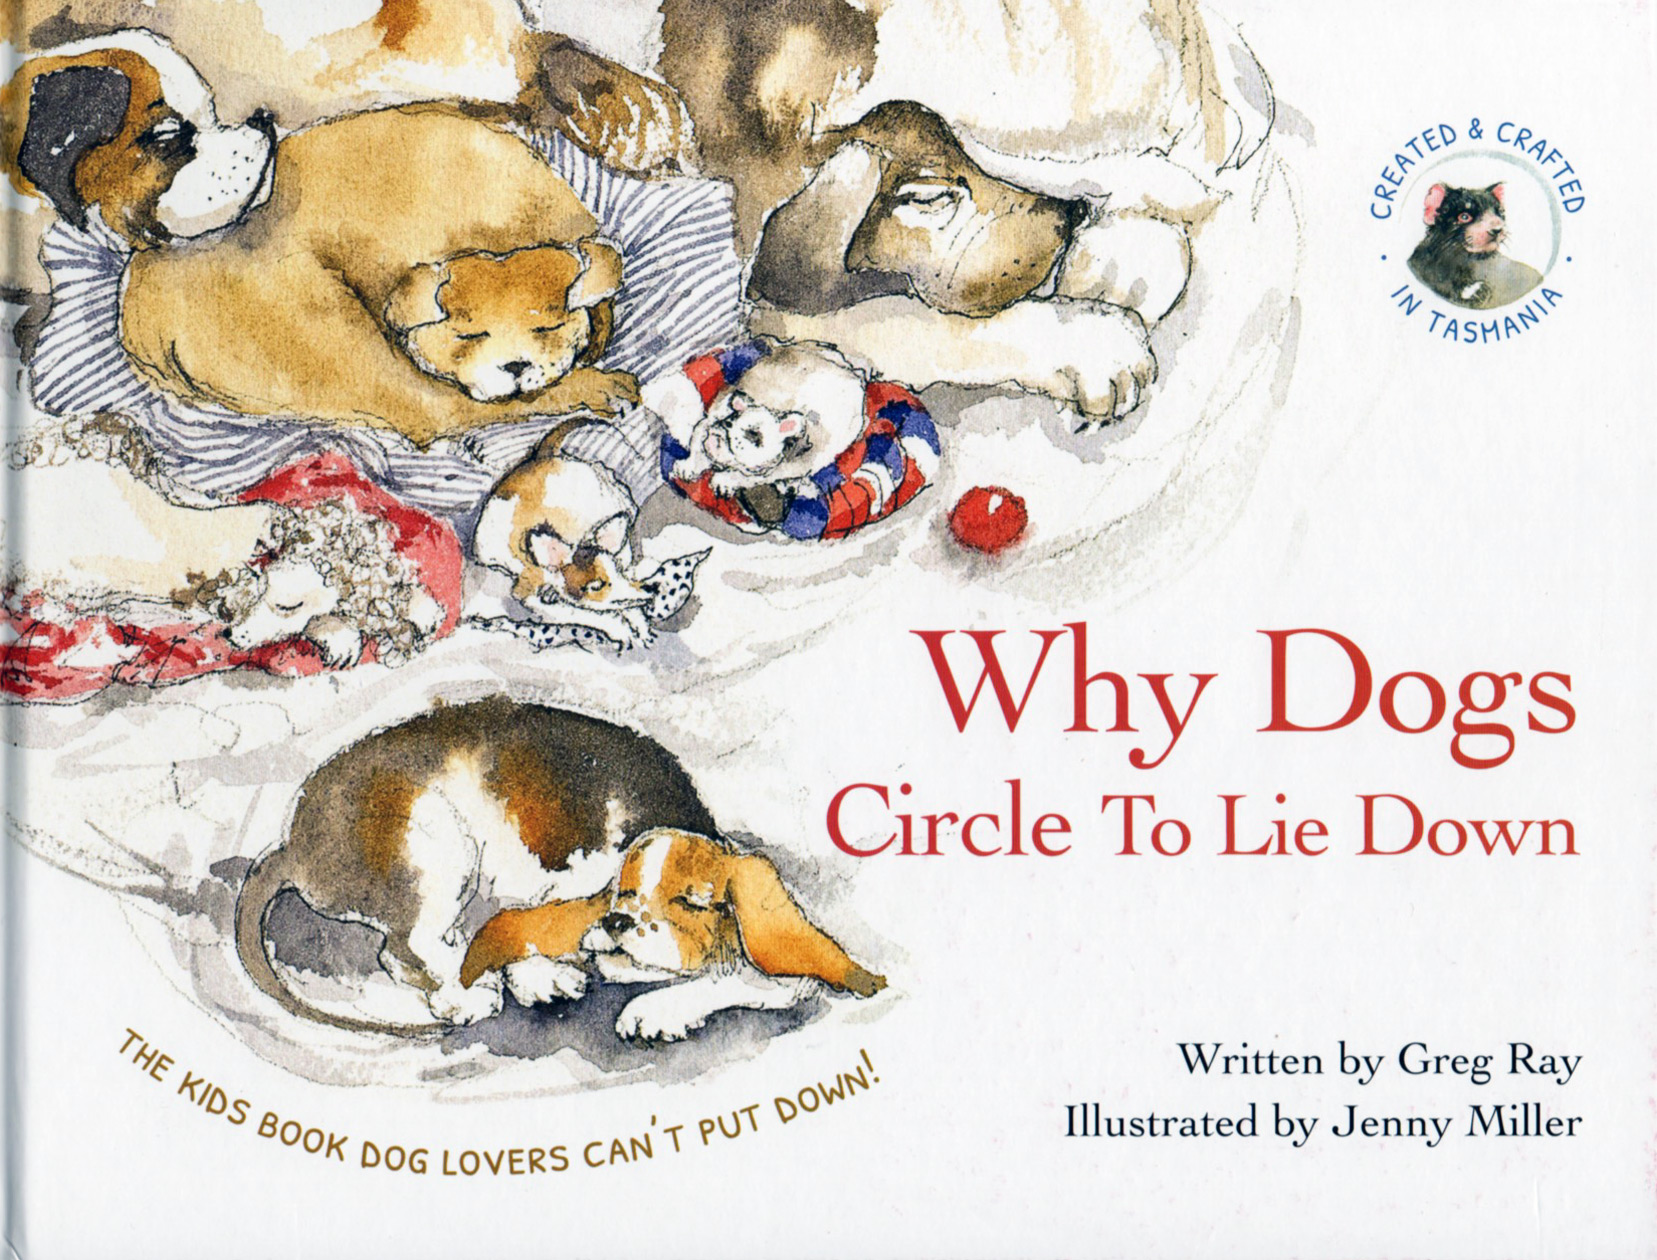 Why Dogs Circle to Lie Down